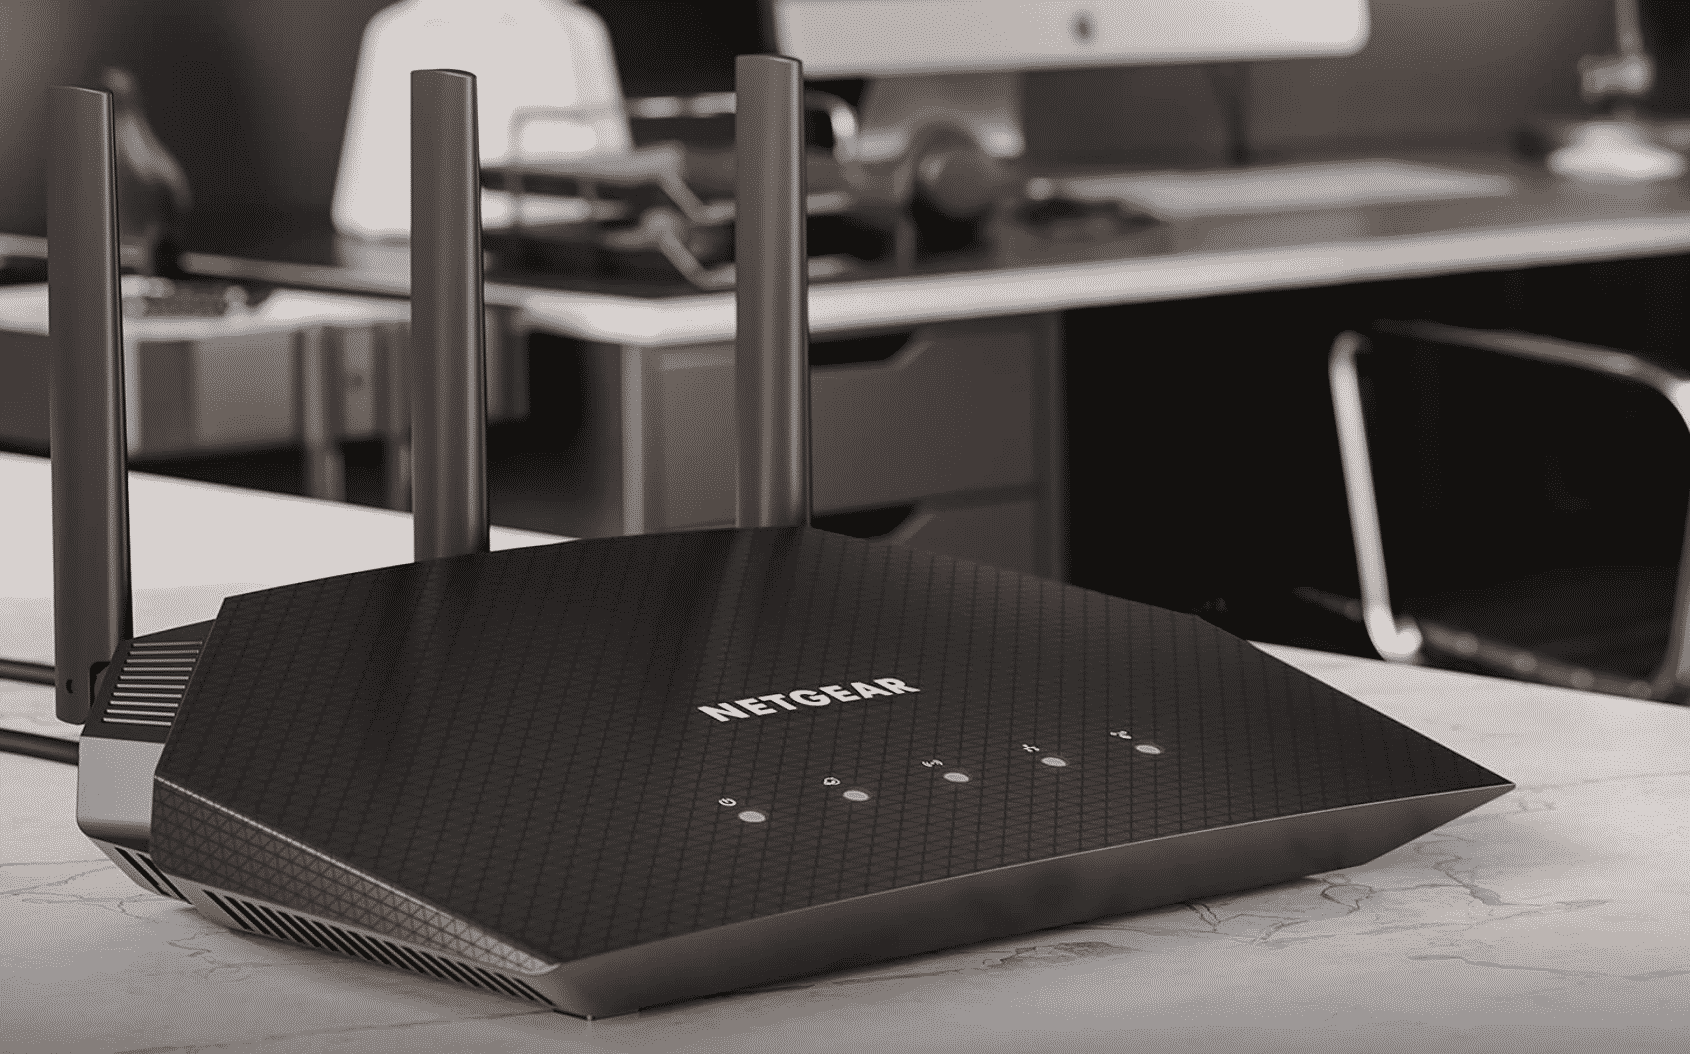 Complete Your Connected Home Setup with the NETGEAR 4-Stream WiFi 6 Router at $20 Off